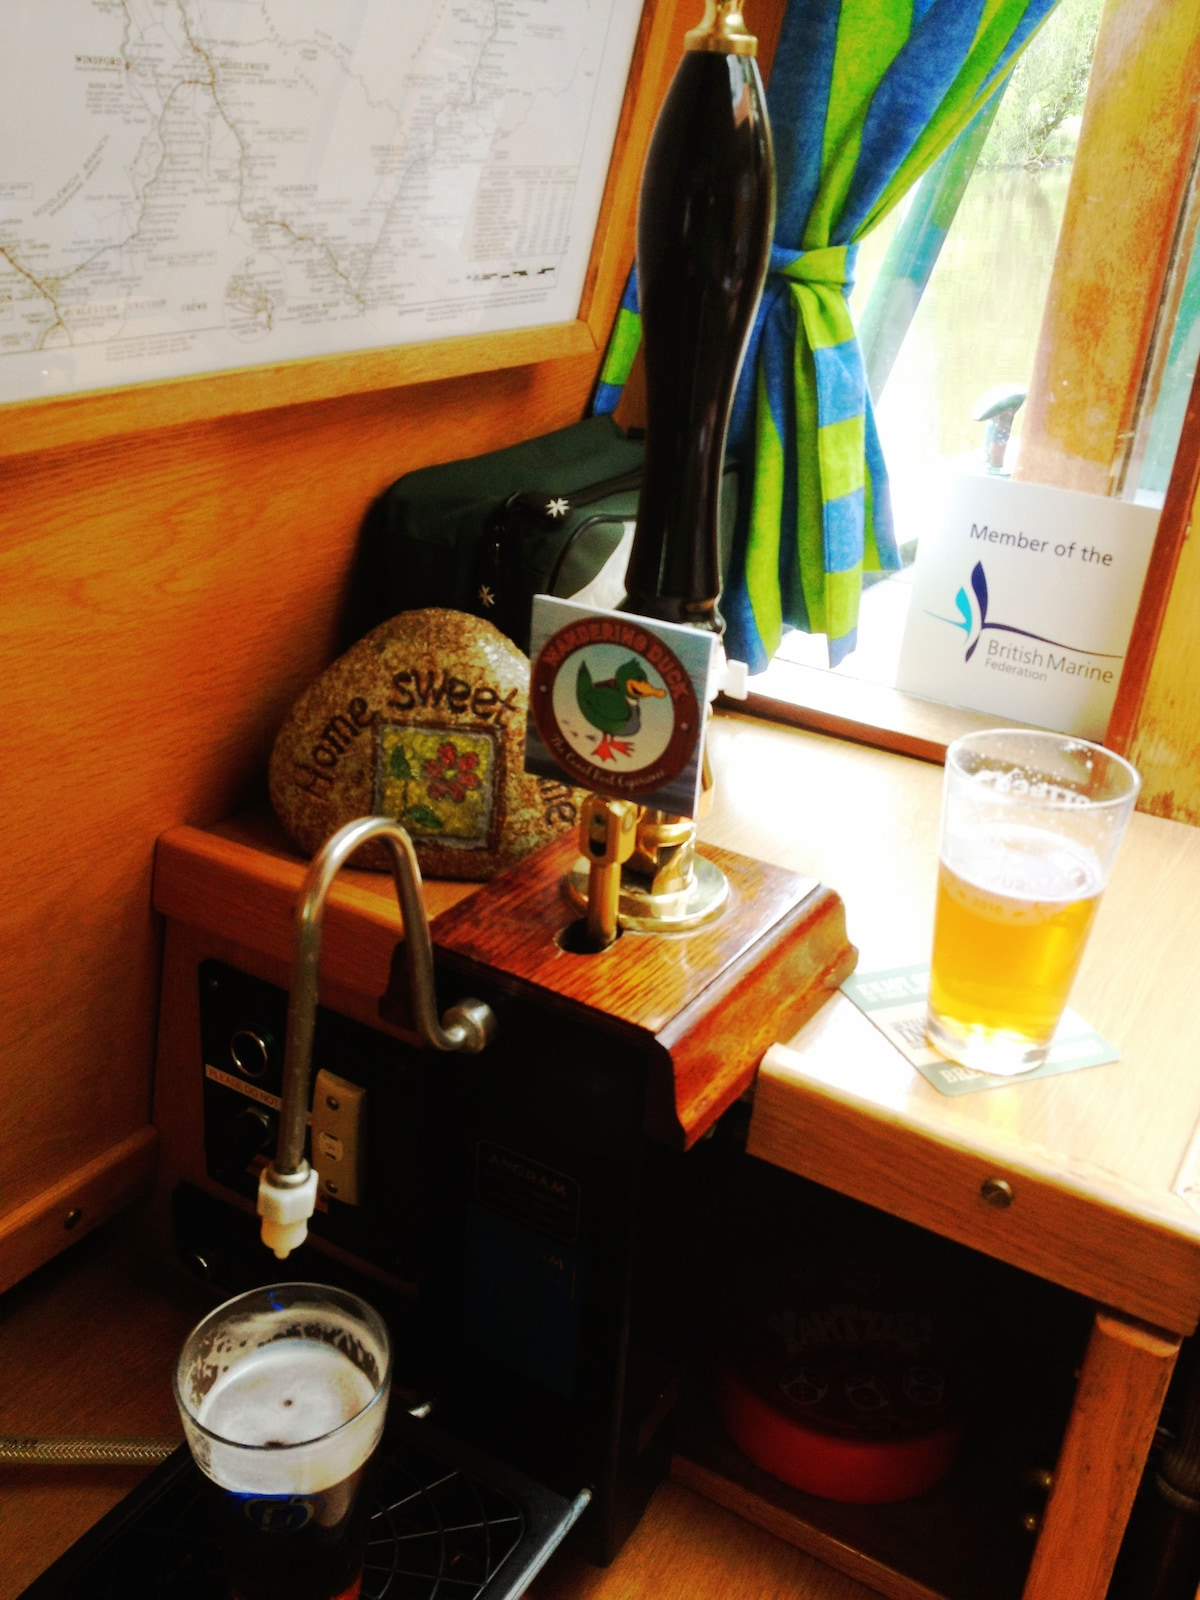 Pull your own pint of real ale